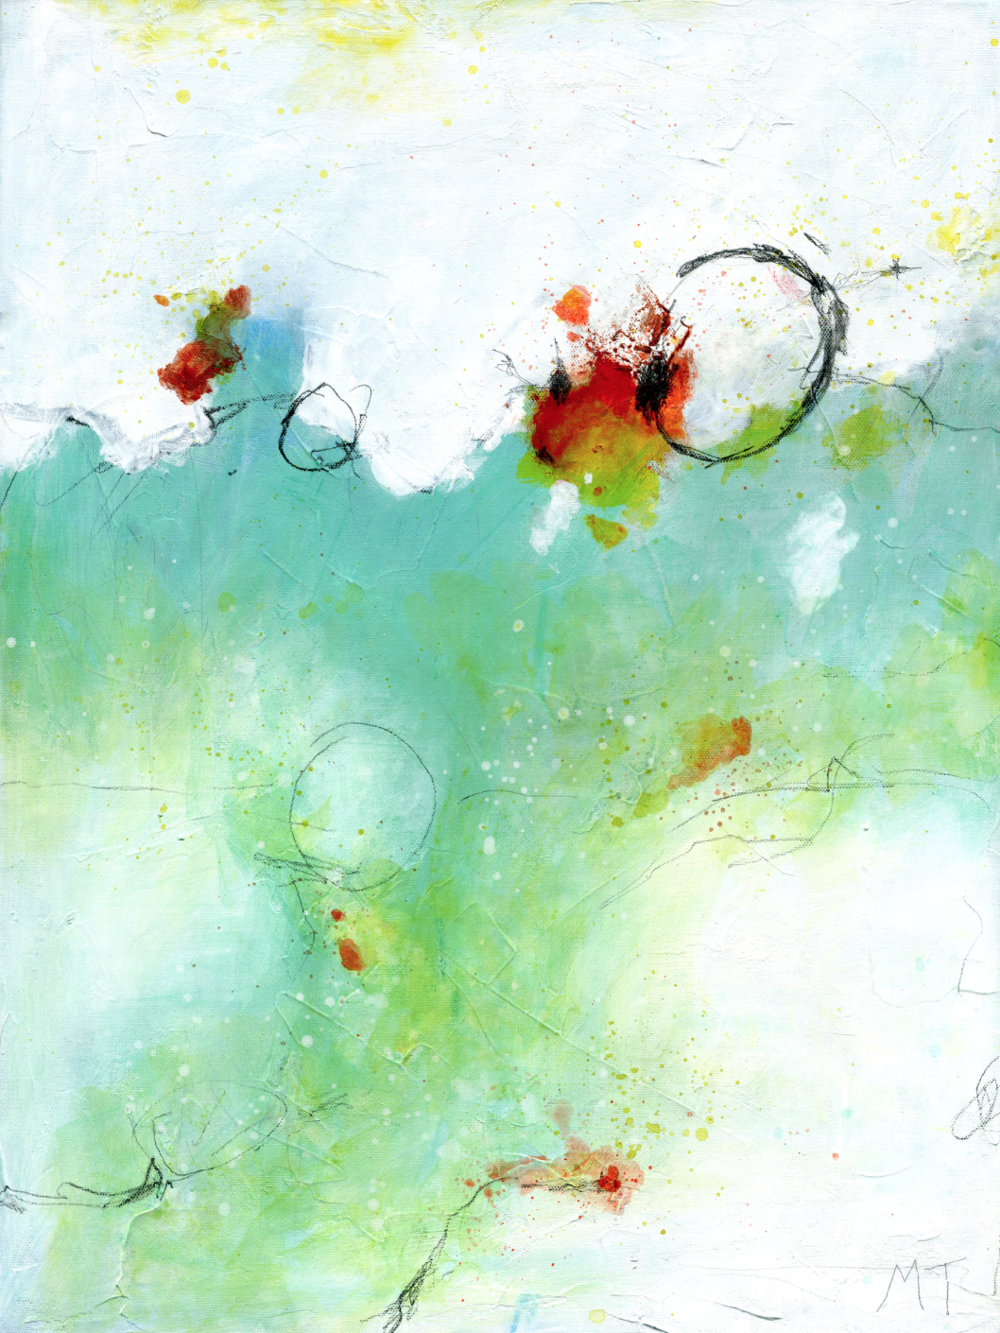 abstract_spacious_painting_art_atmosphere_mandy_thompson_interiority.jpg